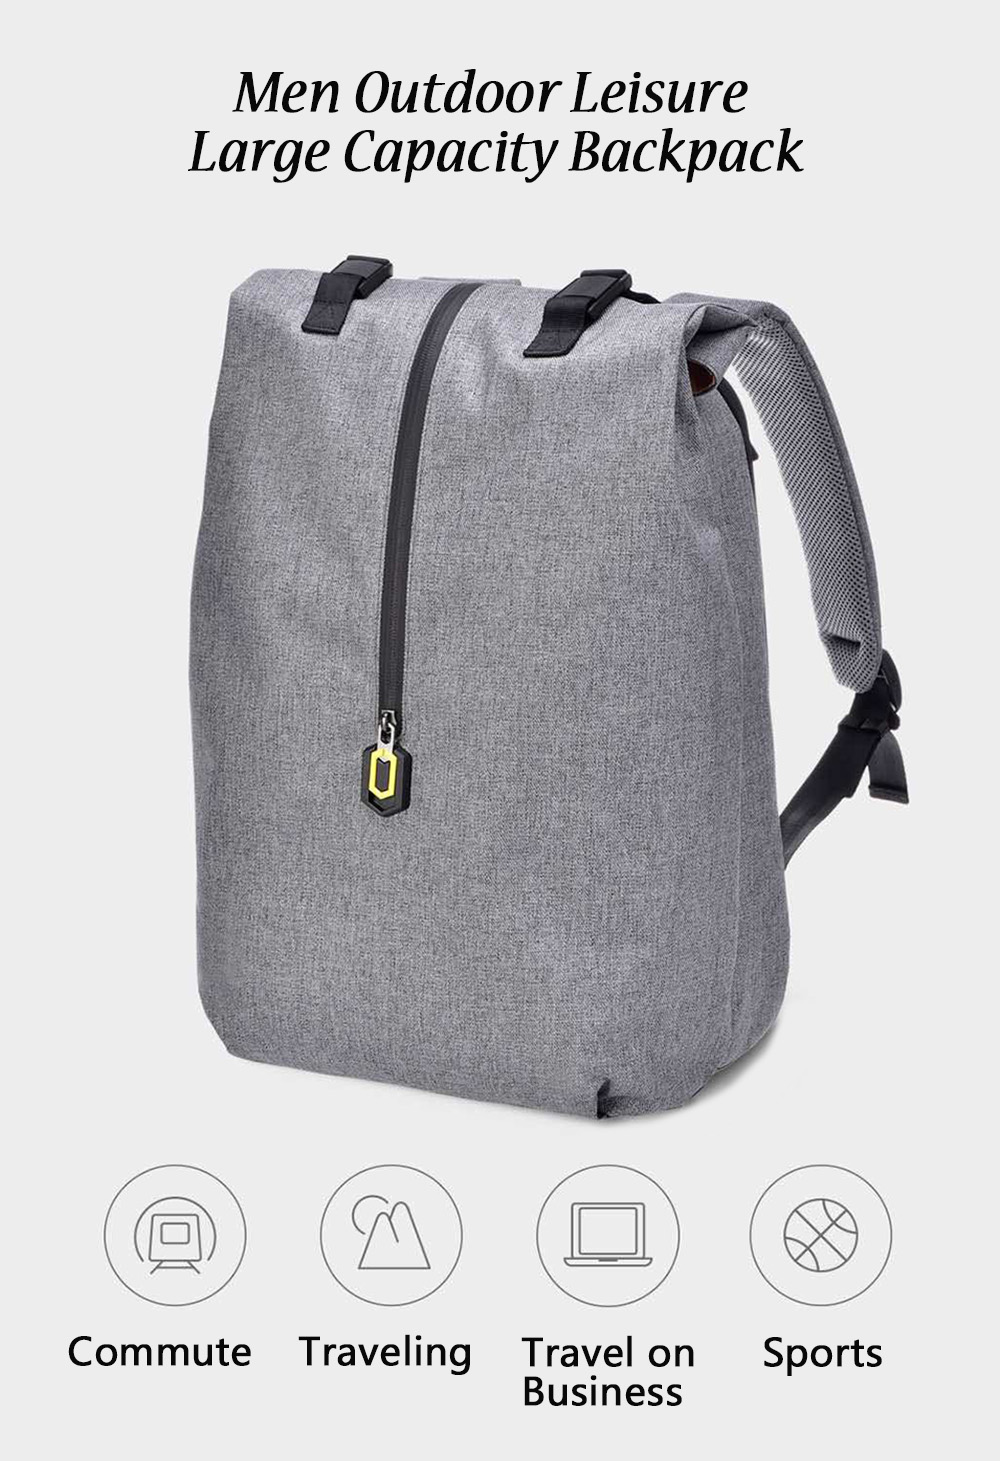 Men Outdoor Leisure Large Capacity Backpack from Xiaomi Youpin- Ocean Blue